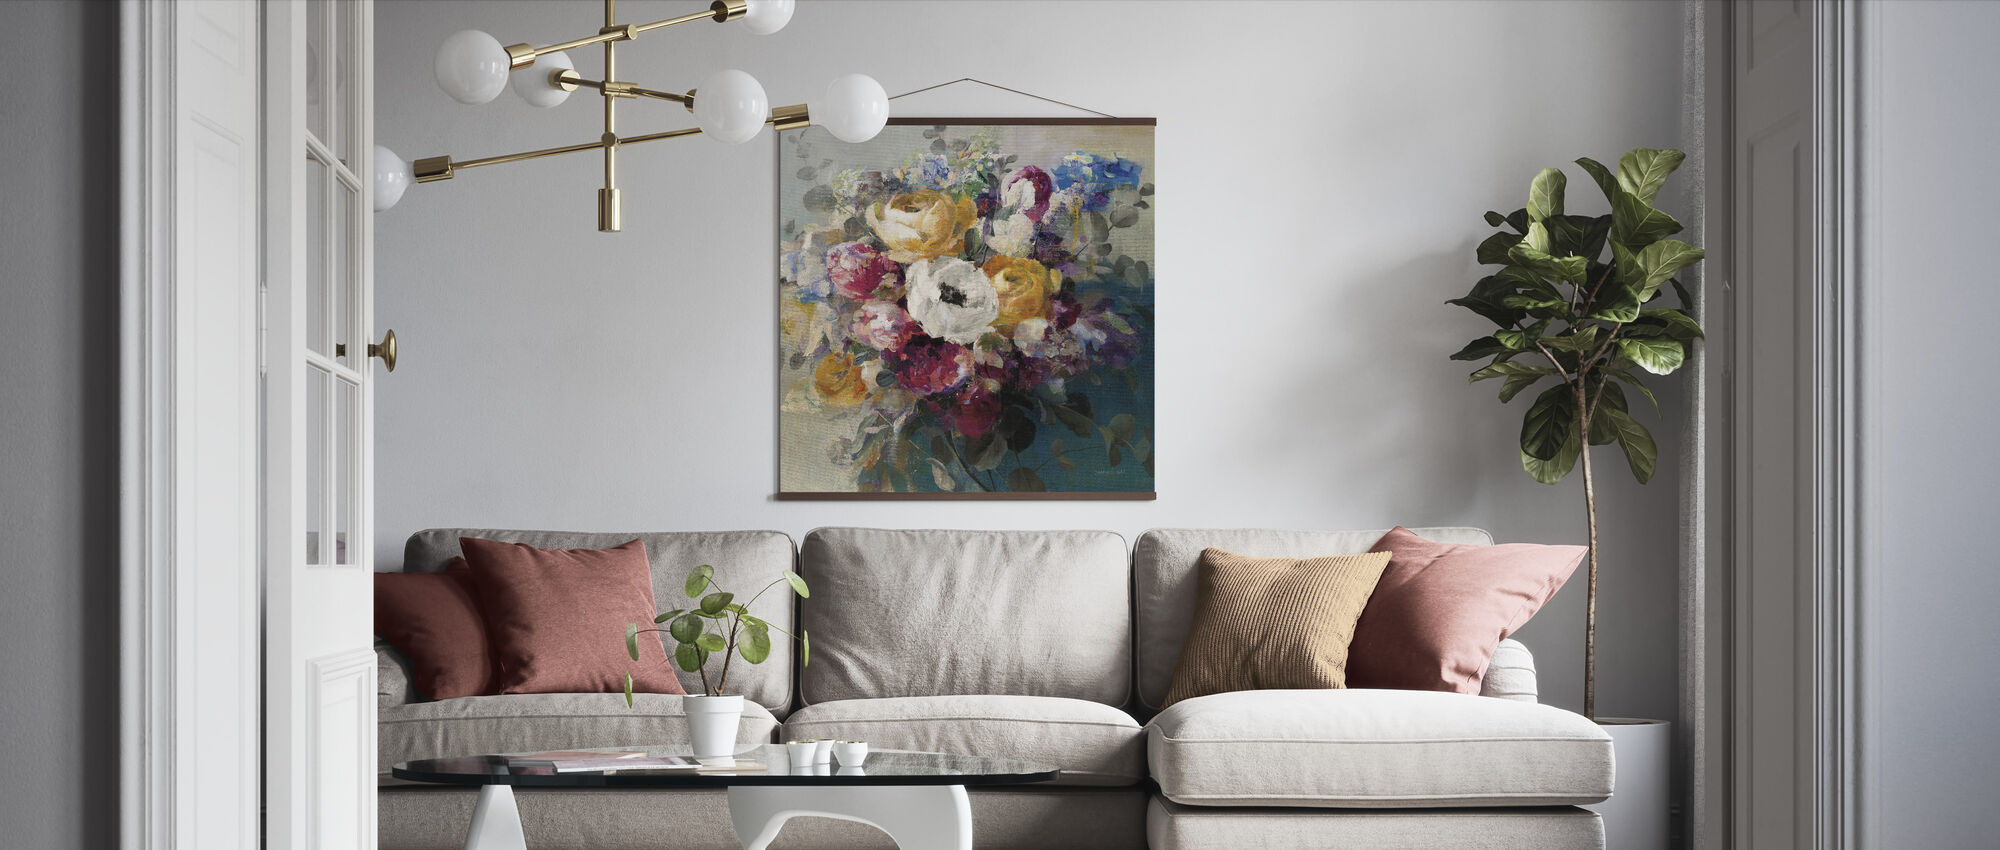 Fall Bouquet - Poster - Living Room